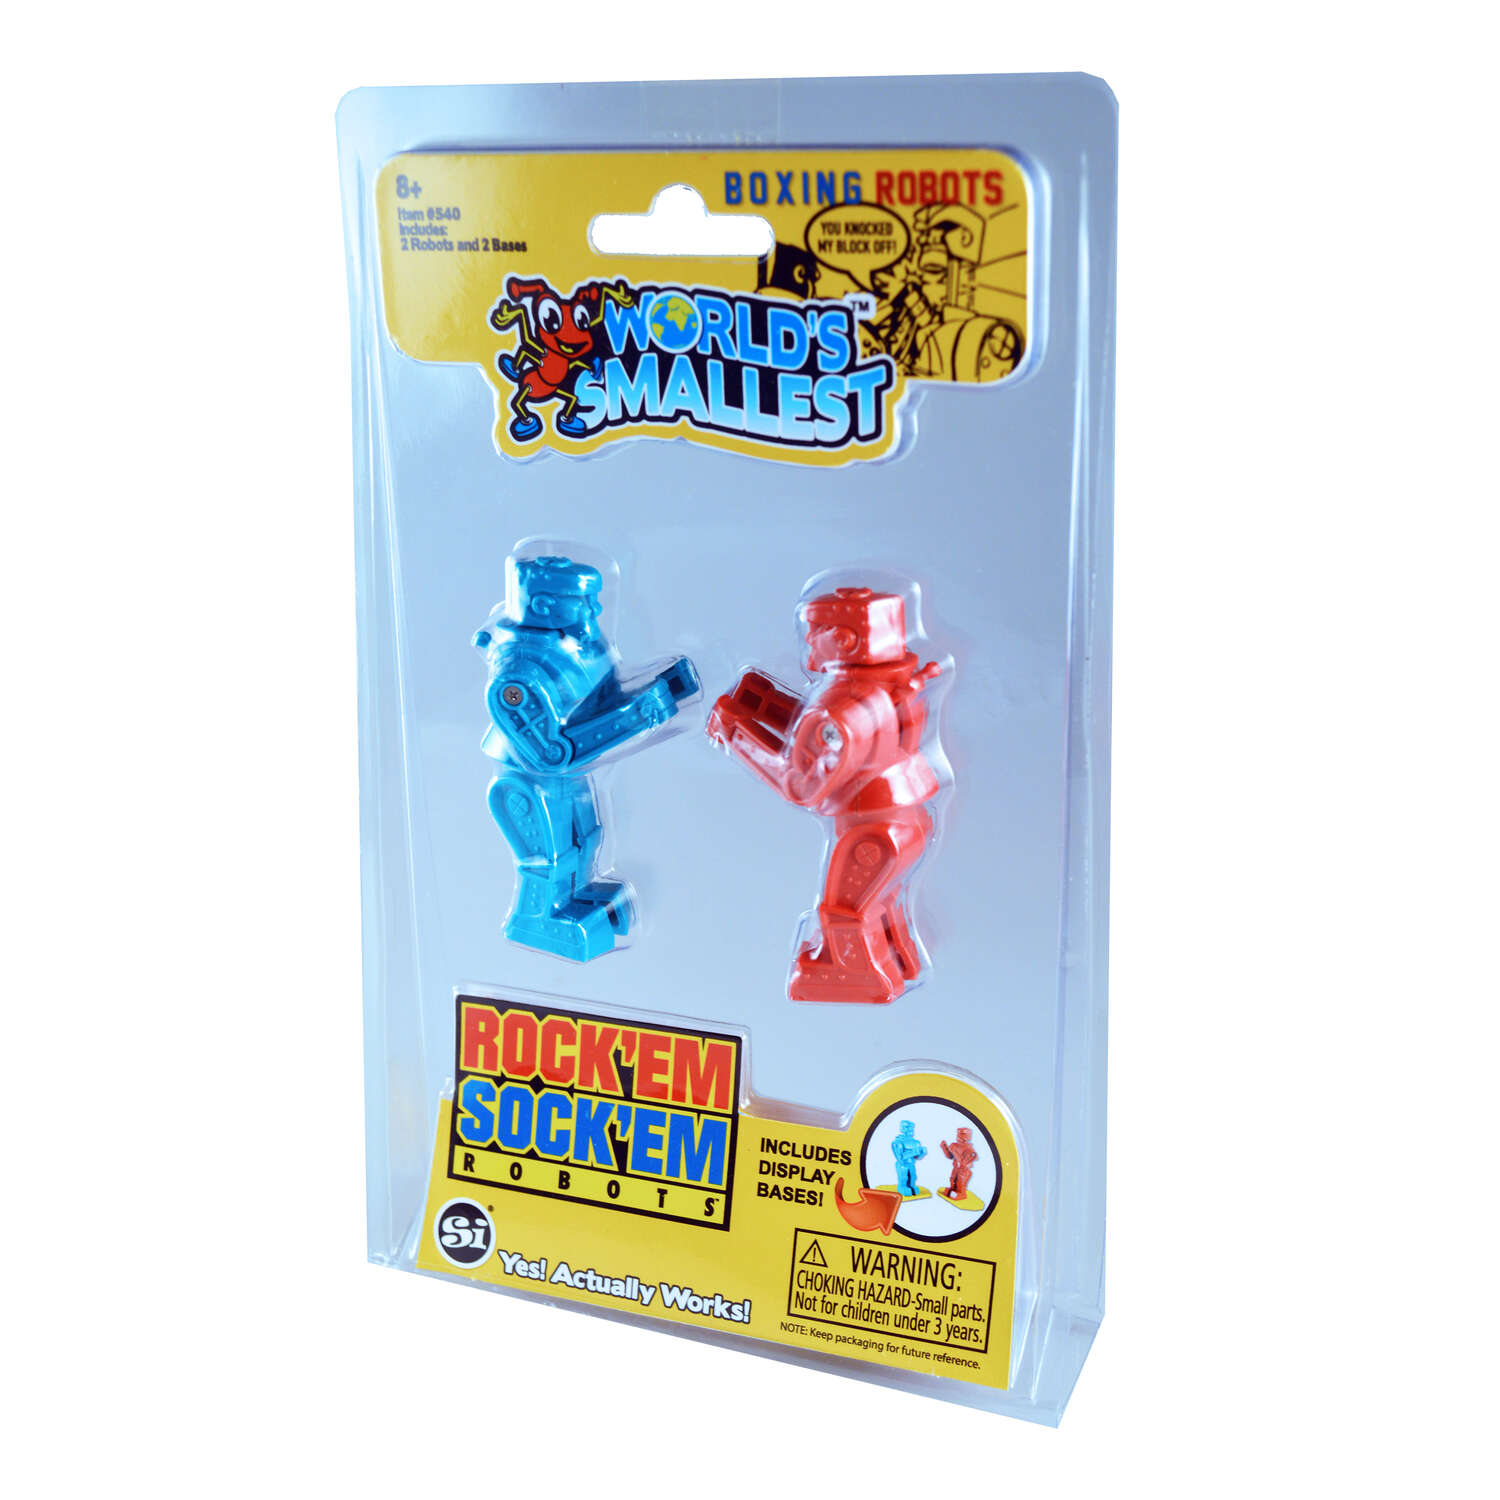 Super Impulse  World's Smallest  Rock'em Sock'em Robots  Plastic  Red and Blue  4 pc.